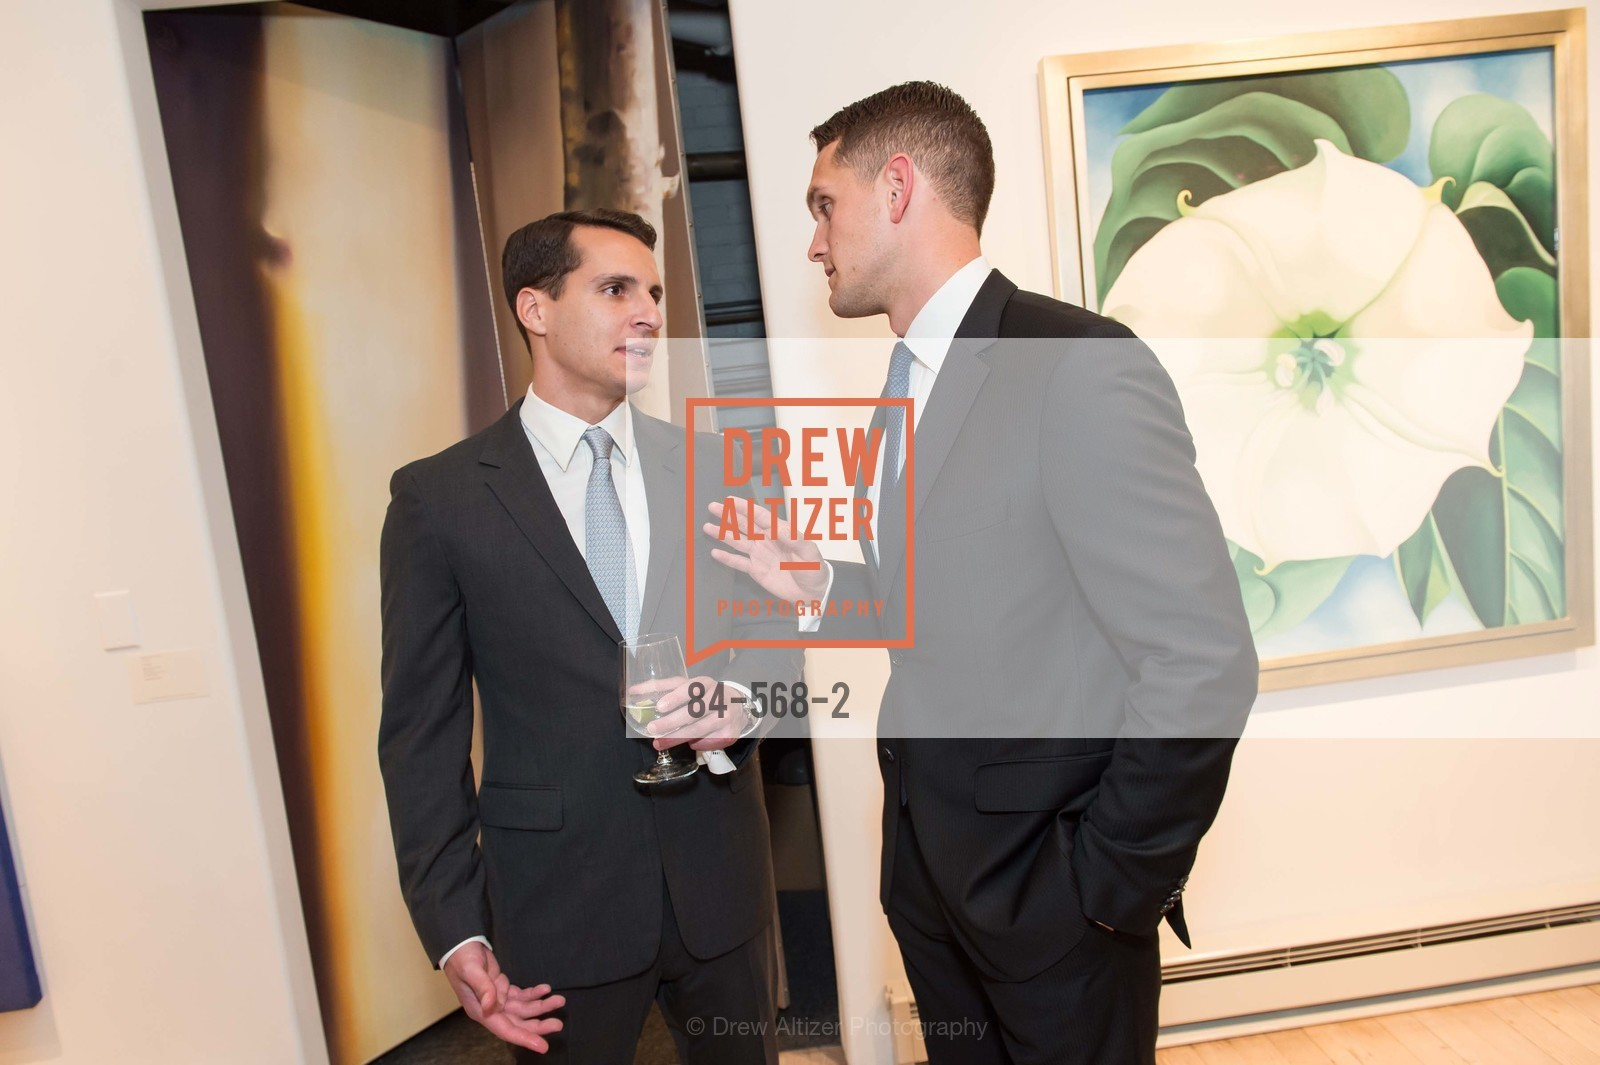 Maxx Traina, Neill Bassi, SOTHEBY'S  Hosts a Private Viewing of Highlights from the Collection of MRS. PAUL MELLON, US, September 17th, 2014,Drew Altizer, Drew Altizer Photography, full-service agency, private events, San Francisco photographer, photographer california